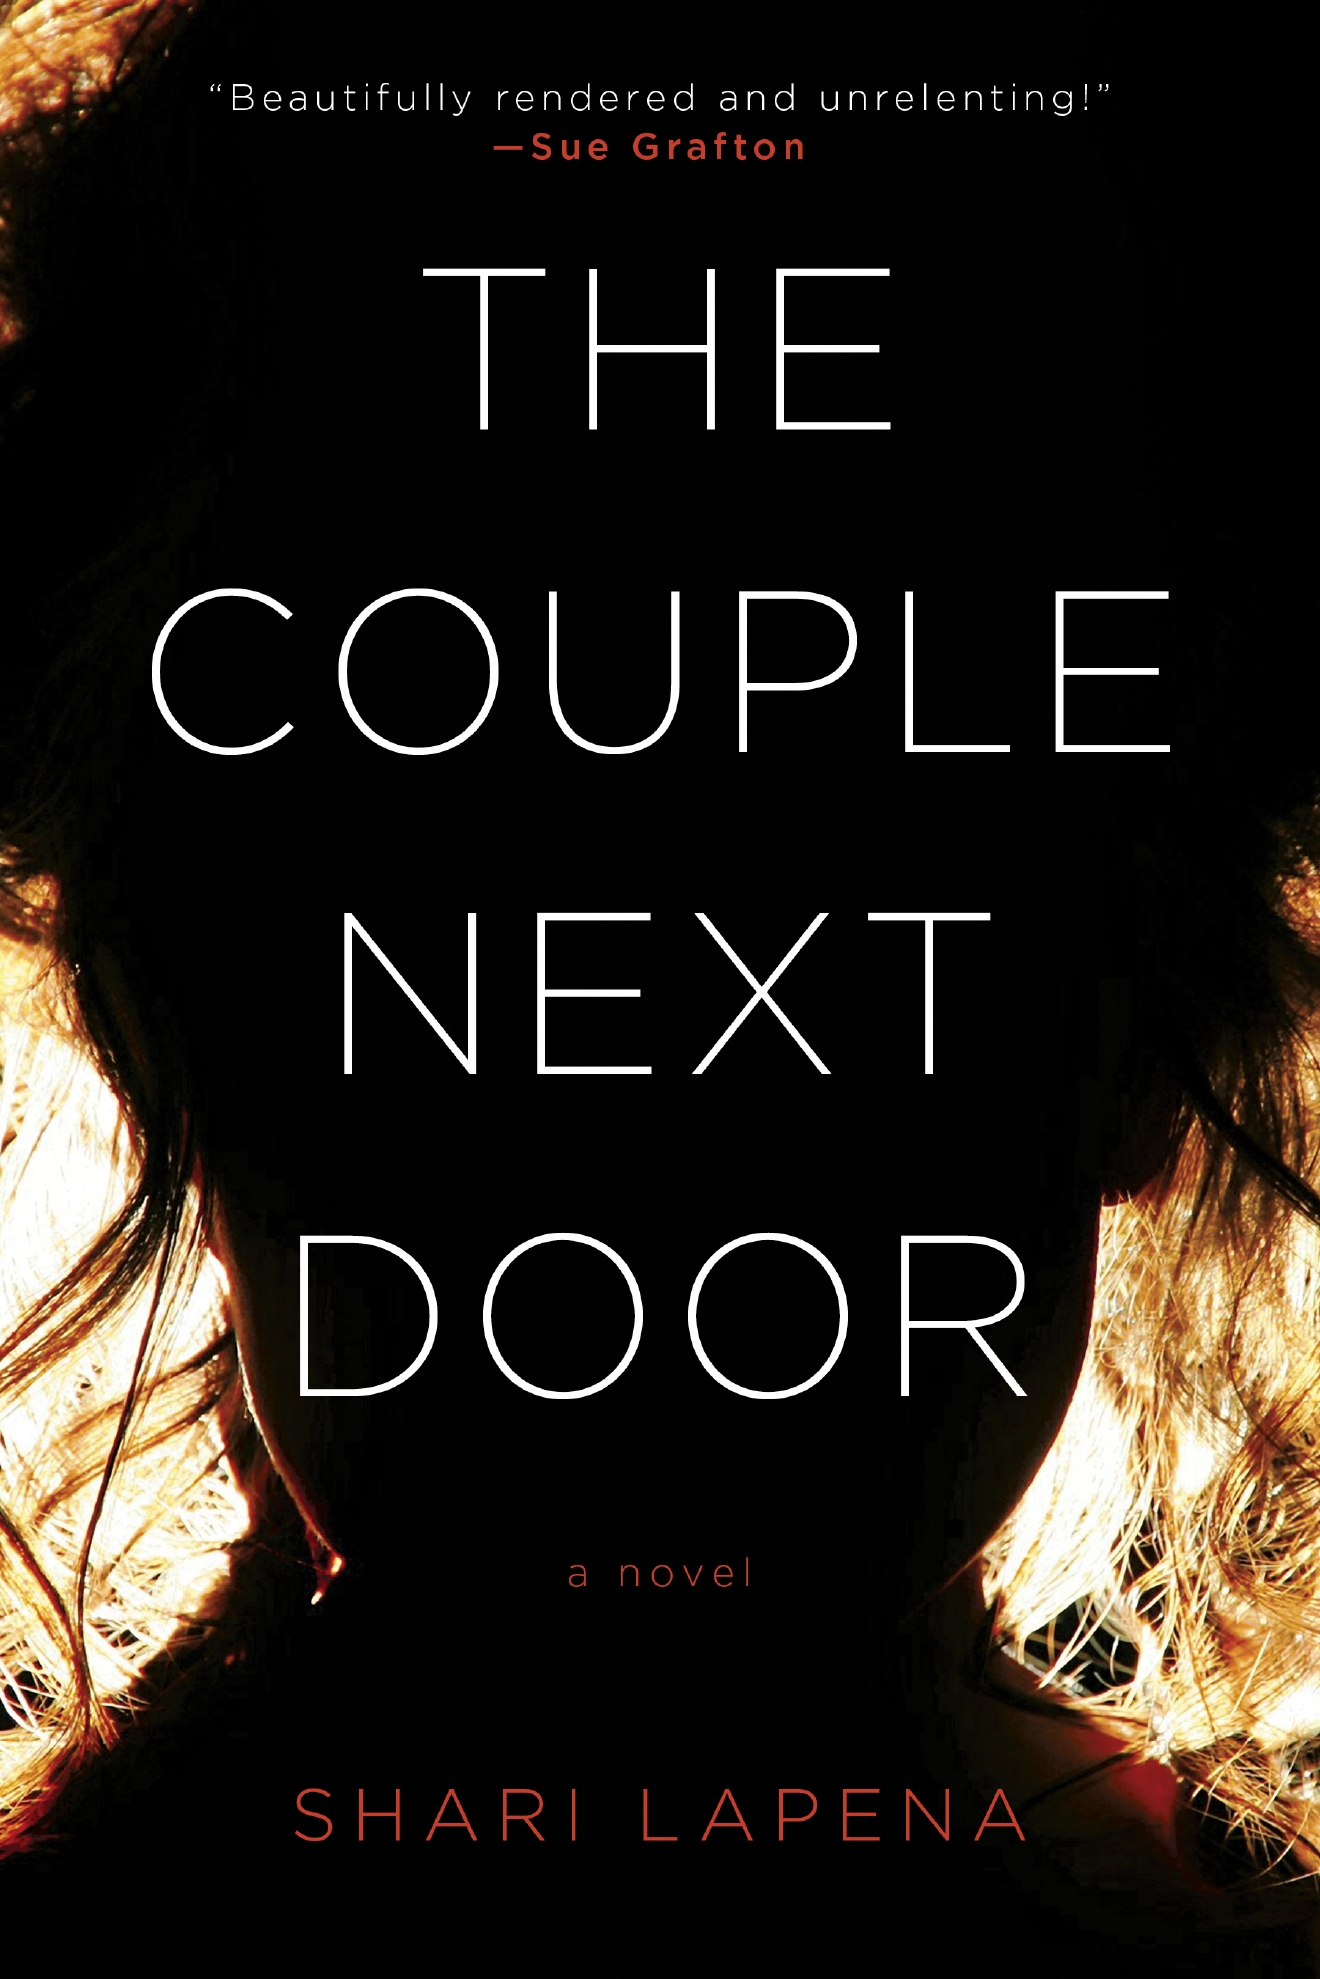 The Couple Next Door, by Shari Lapena (Image: Courtesy Pamela Dorman Books)